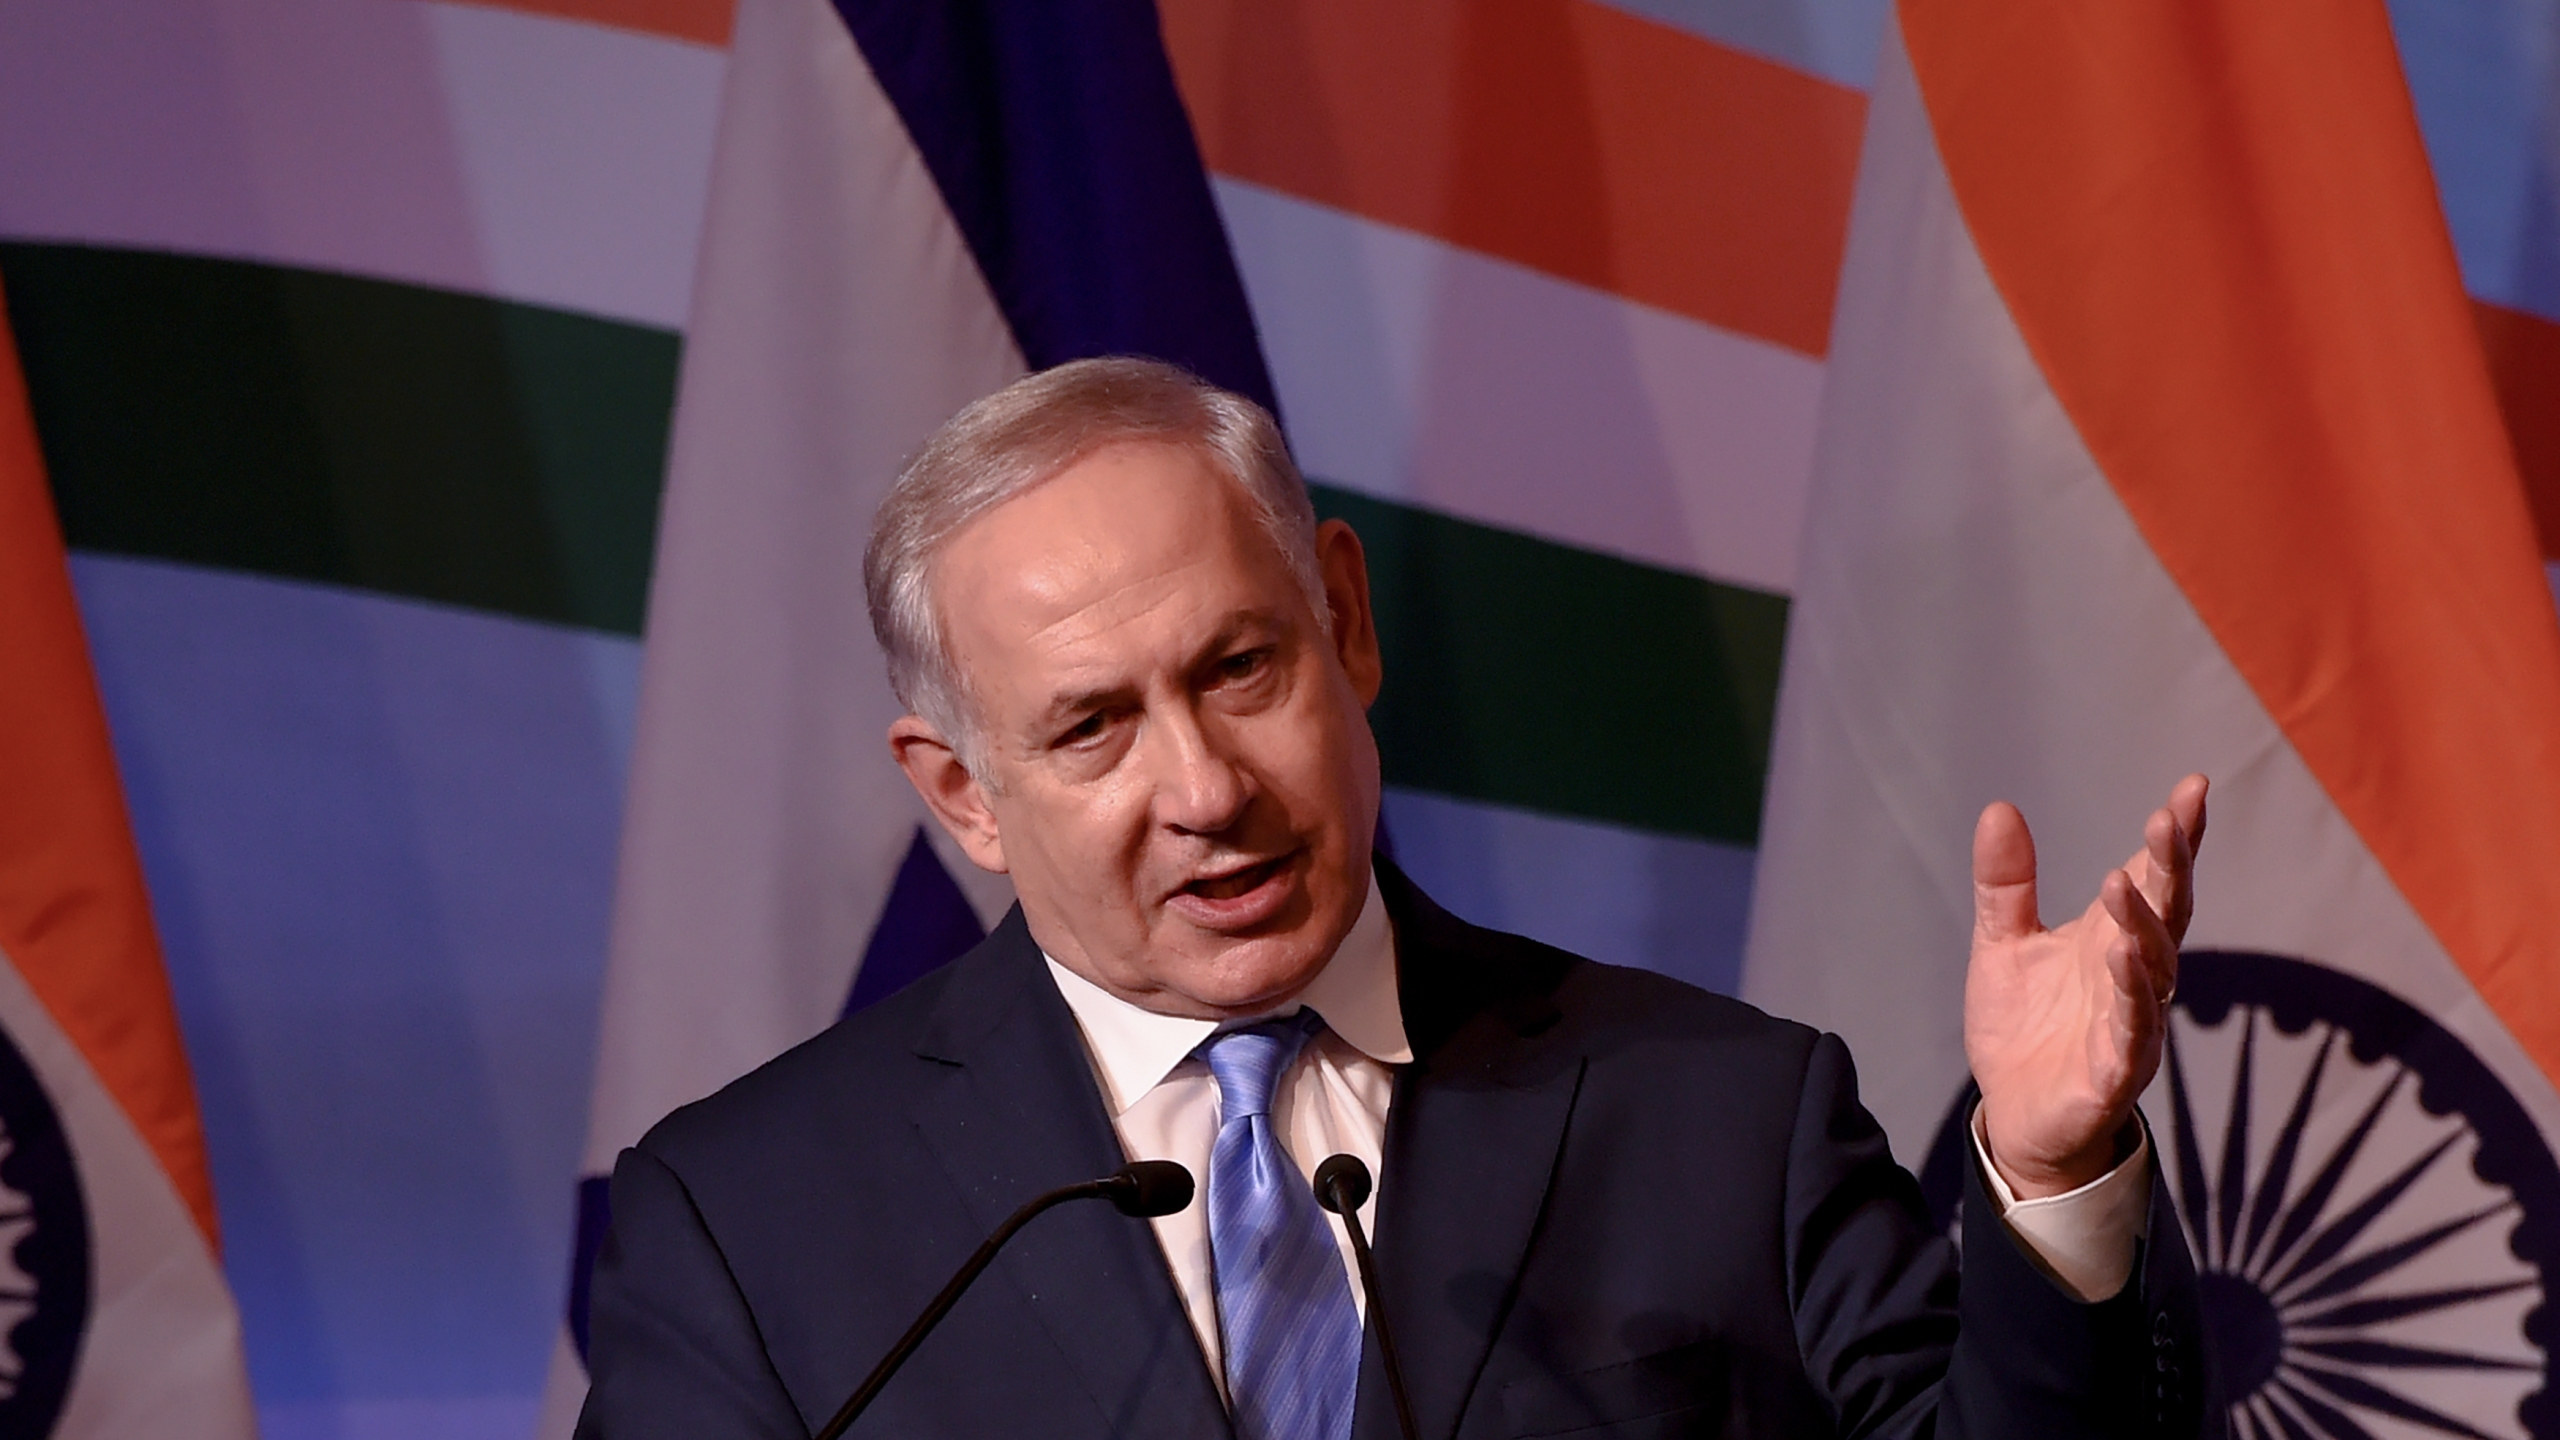 Israeli Prime Minister Benjamin Netanyahu gestures as he speaks during the India-Israel Business Summit in New Delhi on January 15, 2018. (Credit: MONEY SHARMA/AFP/Getty Images)